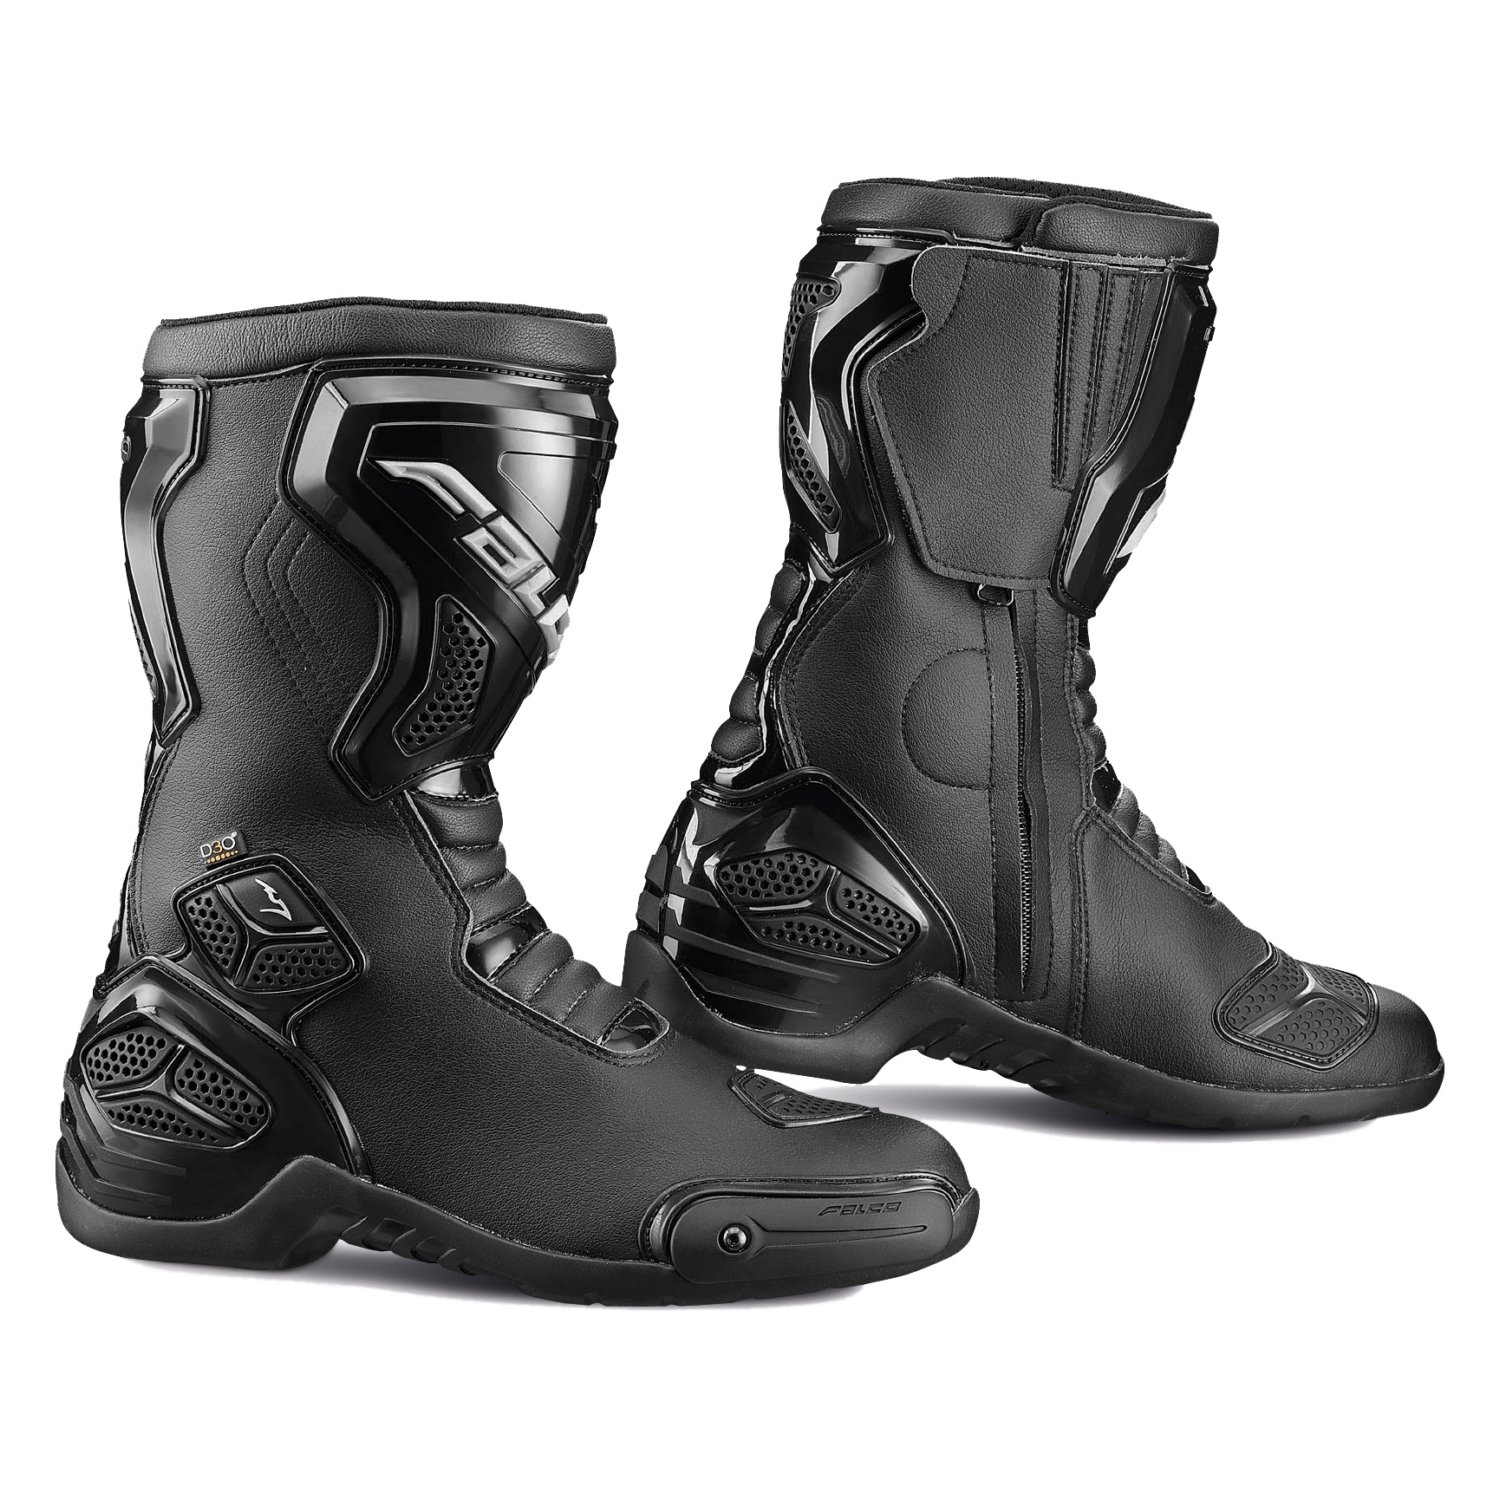 FALCO OXEGEN 2 WTR SPORTS TOURING WATERPROOF D30 MOTORCYCLE BOOTS BLACK 42